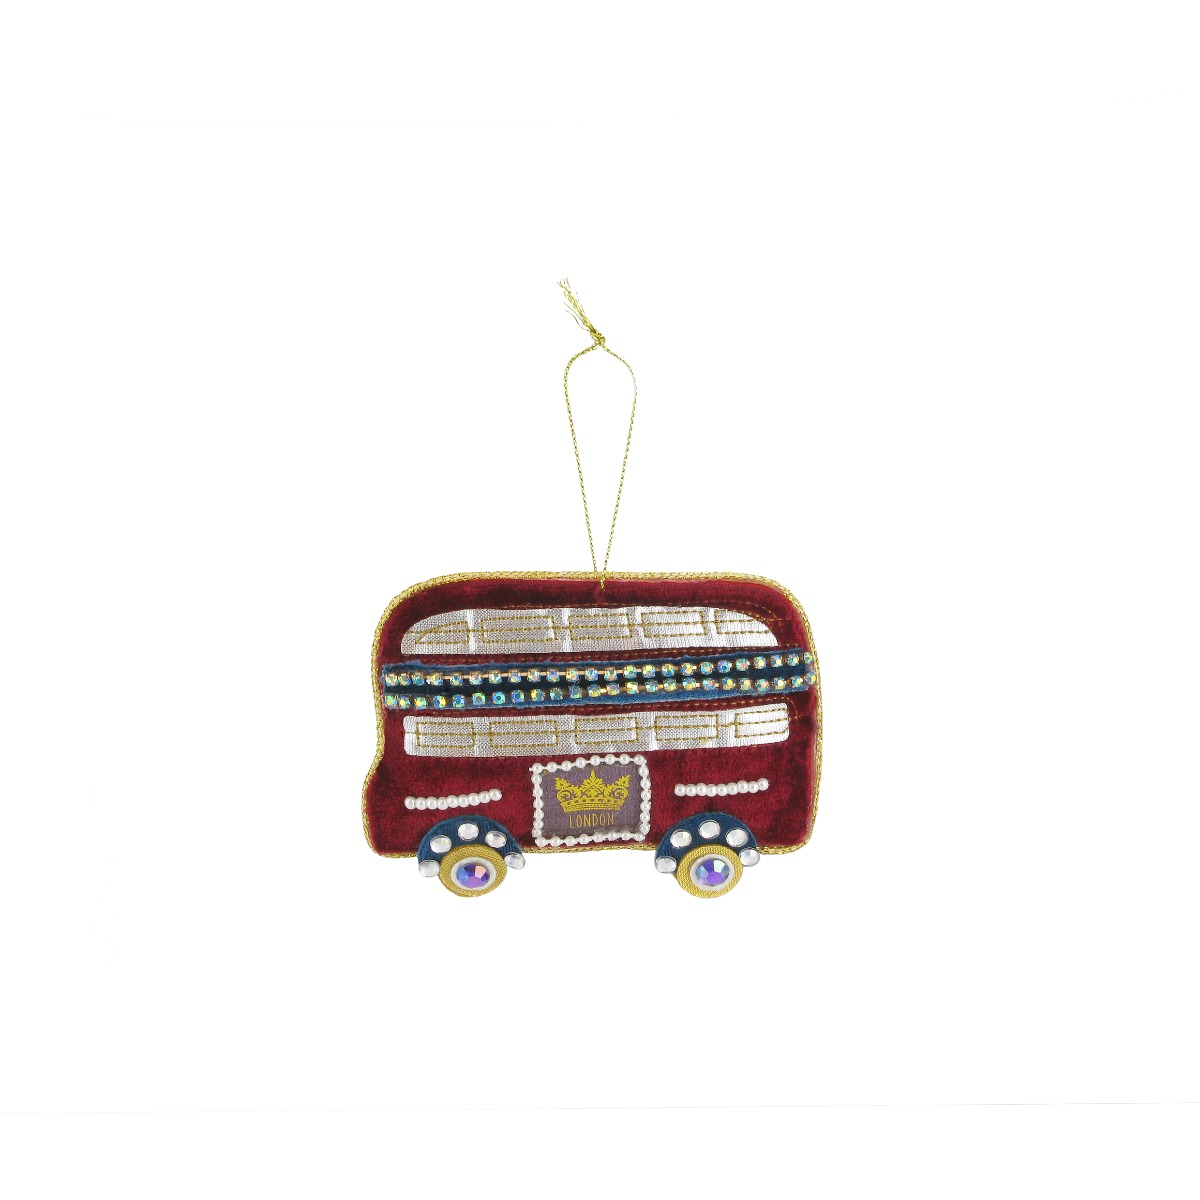 Embroidery London bus  decoration